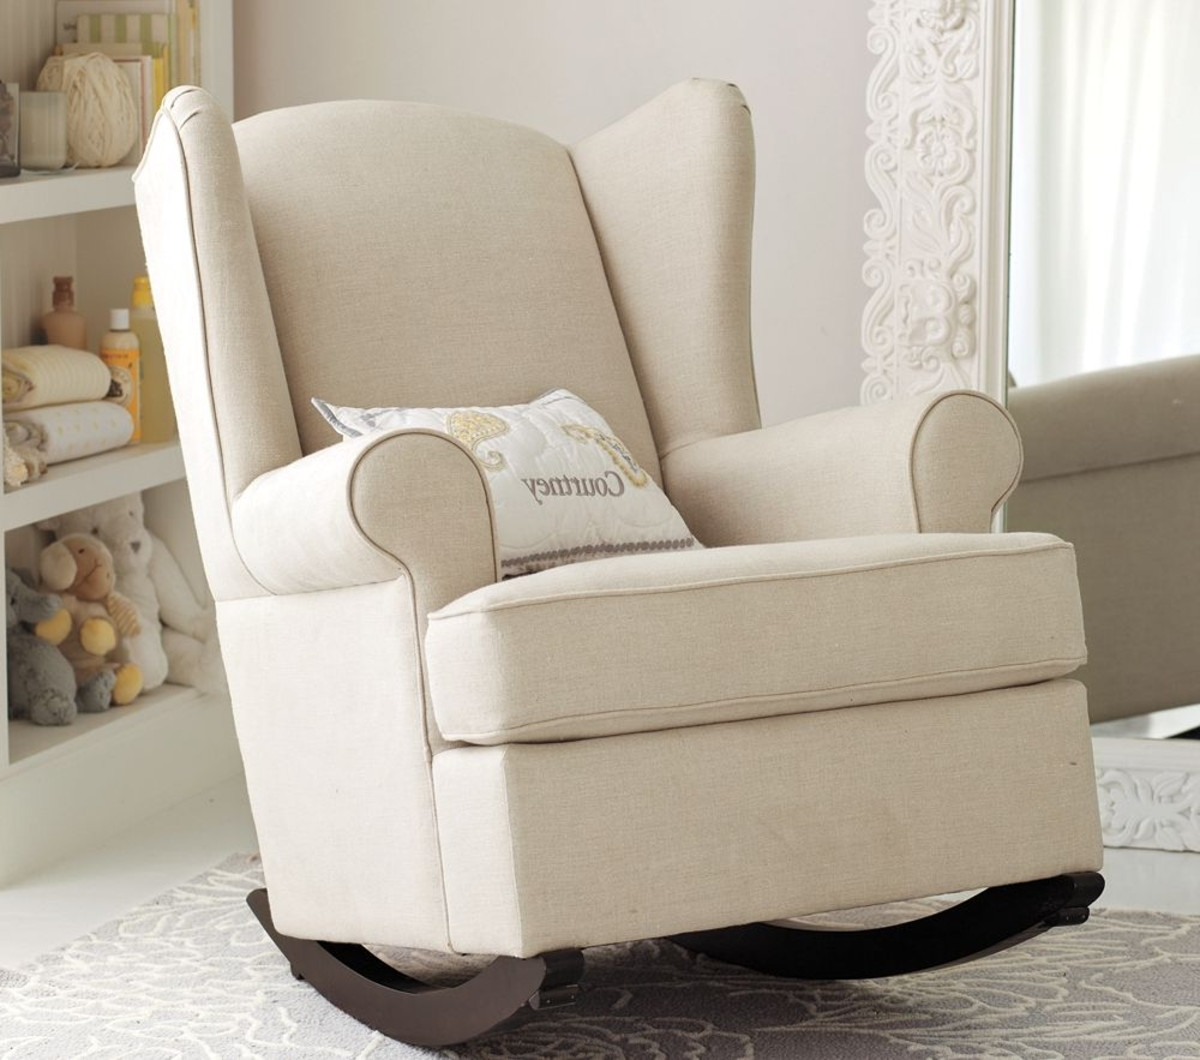 Most Popular Rocking Chairs For Baby Room In Nursery Rocking Chair Courtney – Nursery Rocking Chair For Mom And (View 9 of 15)